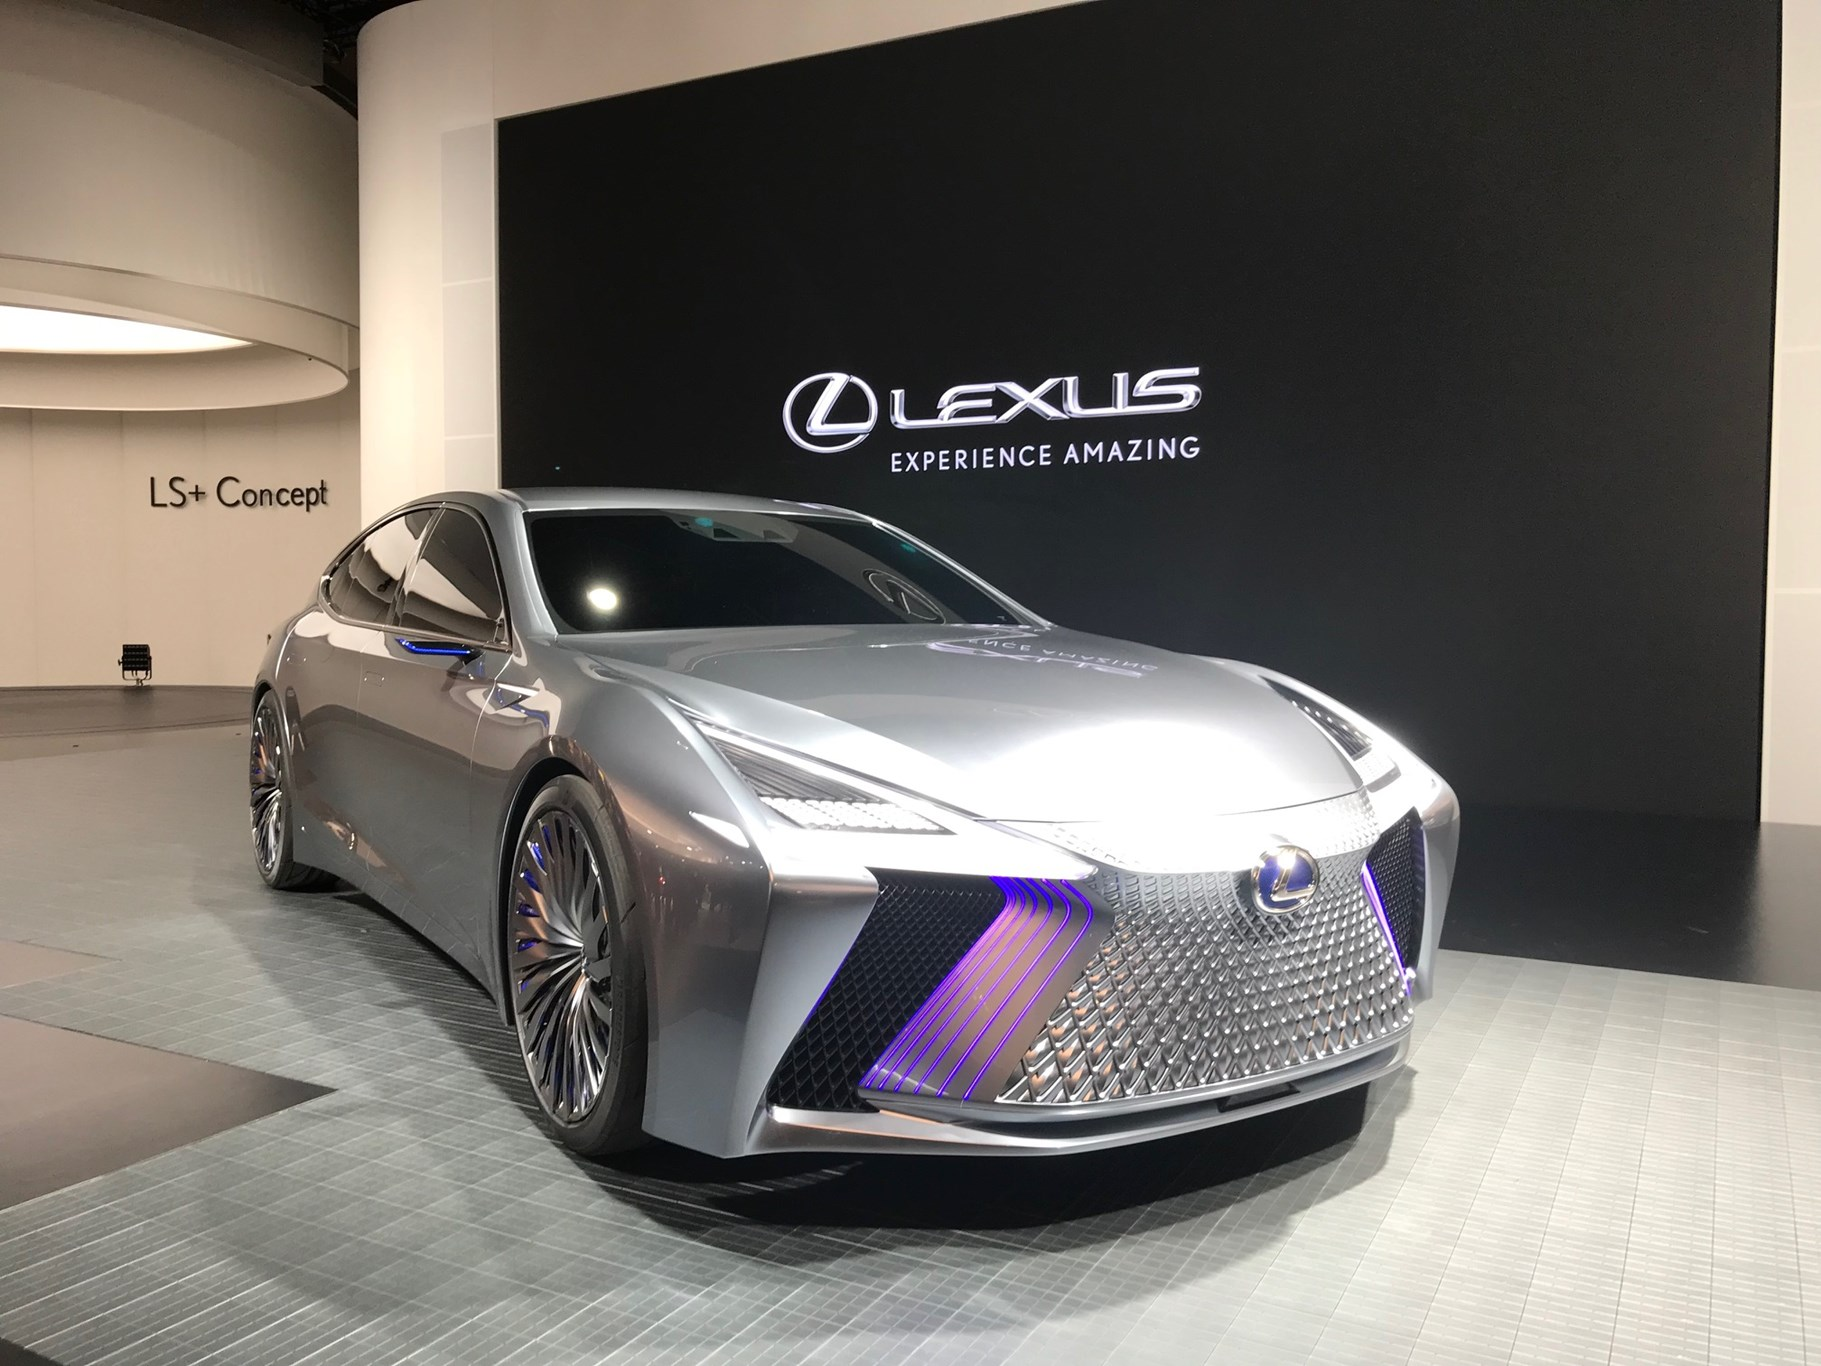 https://car-images.bauersecure.com/pagefiles/77199/lexus-ls-plus-01.jpg